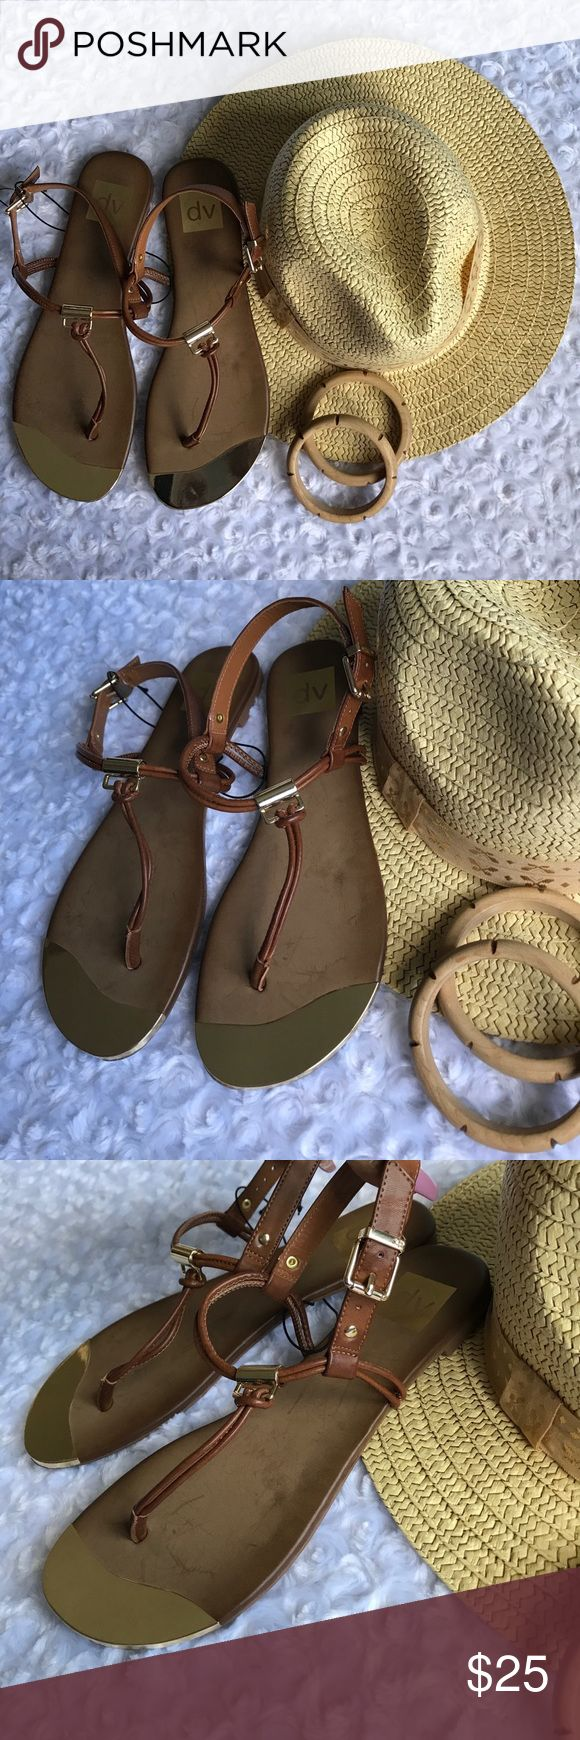 DV BROWN THONG FLAT SANDALS Gold accents make these POP!! PEDICURE READY!!!! Simple. Chic. dv Shoes Sandals